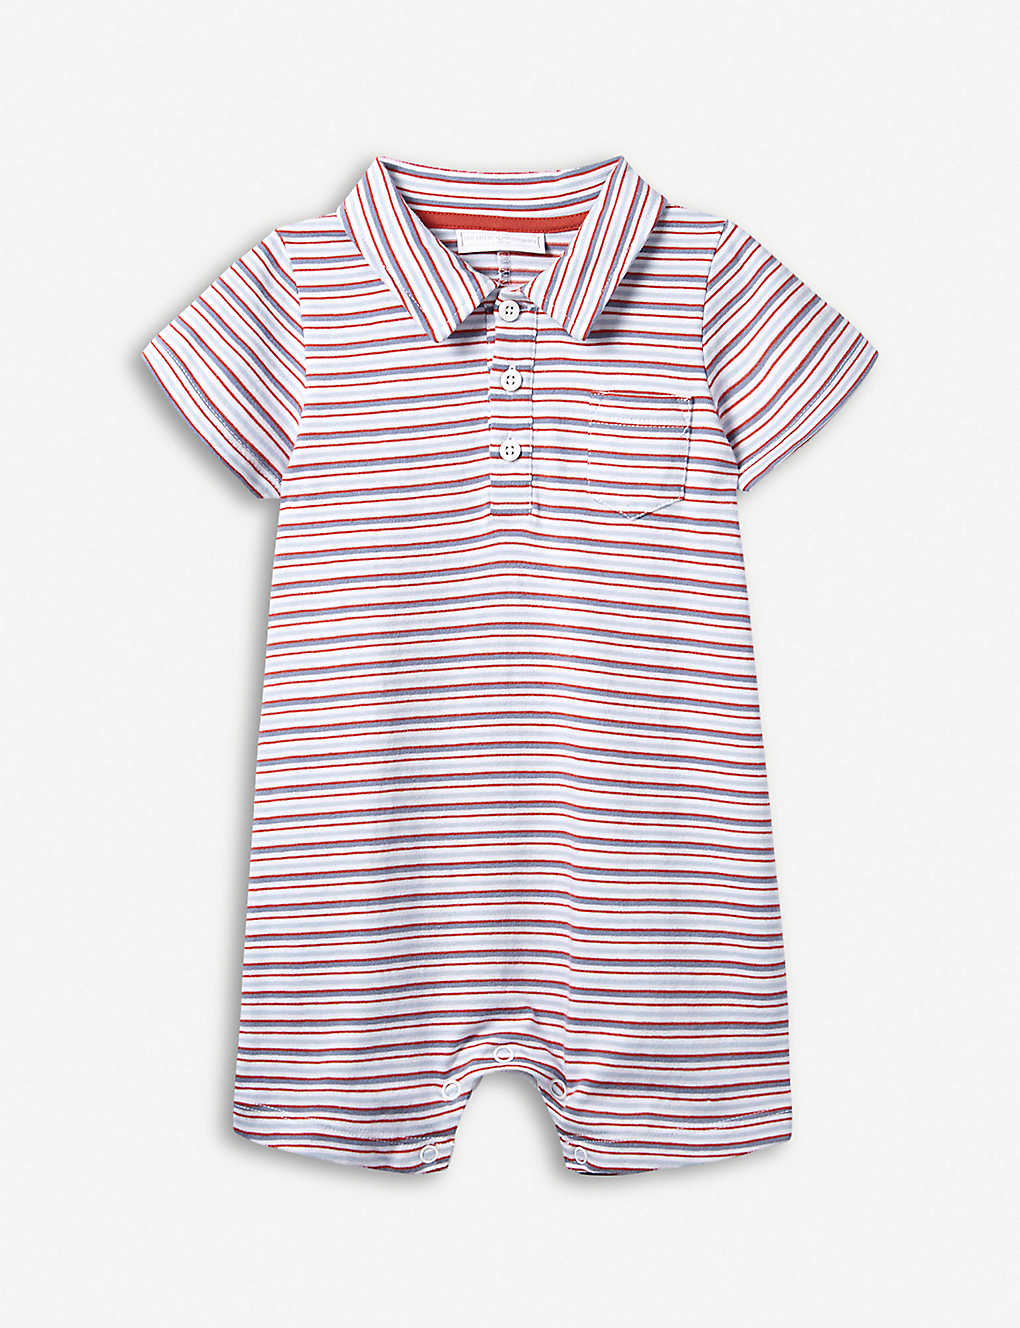 626426424890a THE LITTLE WHITE COMPANY - Striped cotton-jersey shortie 0-24 months ...